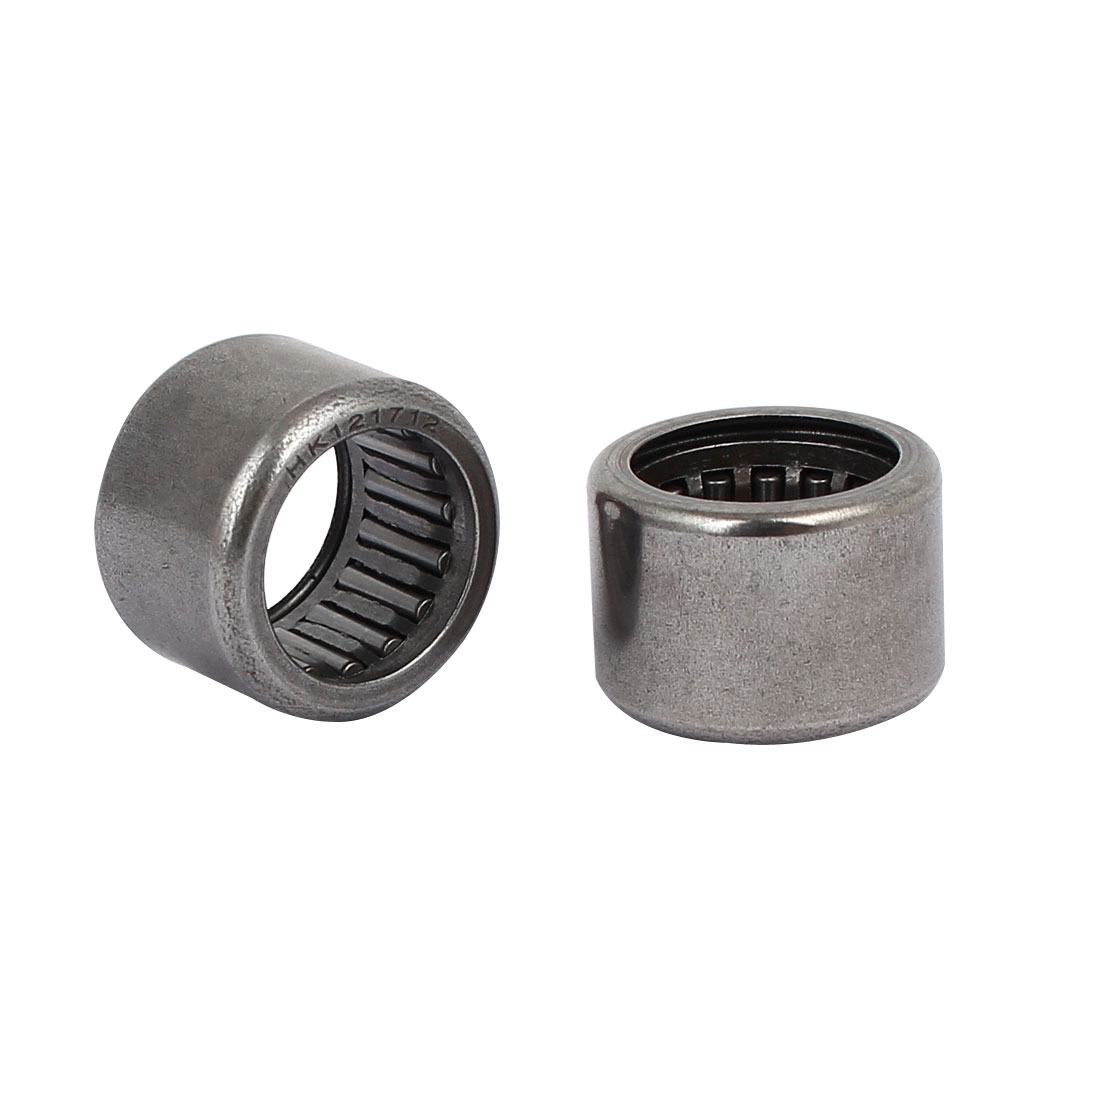 12mm x 17mm x 12mm Full Complement Drawn Cup Open Needle Roller Bearings 5PCS - image 2 of 3